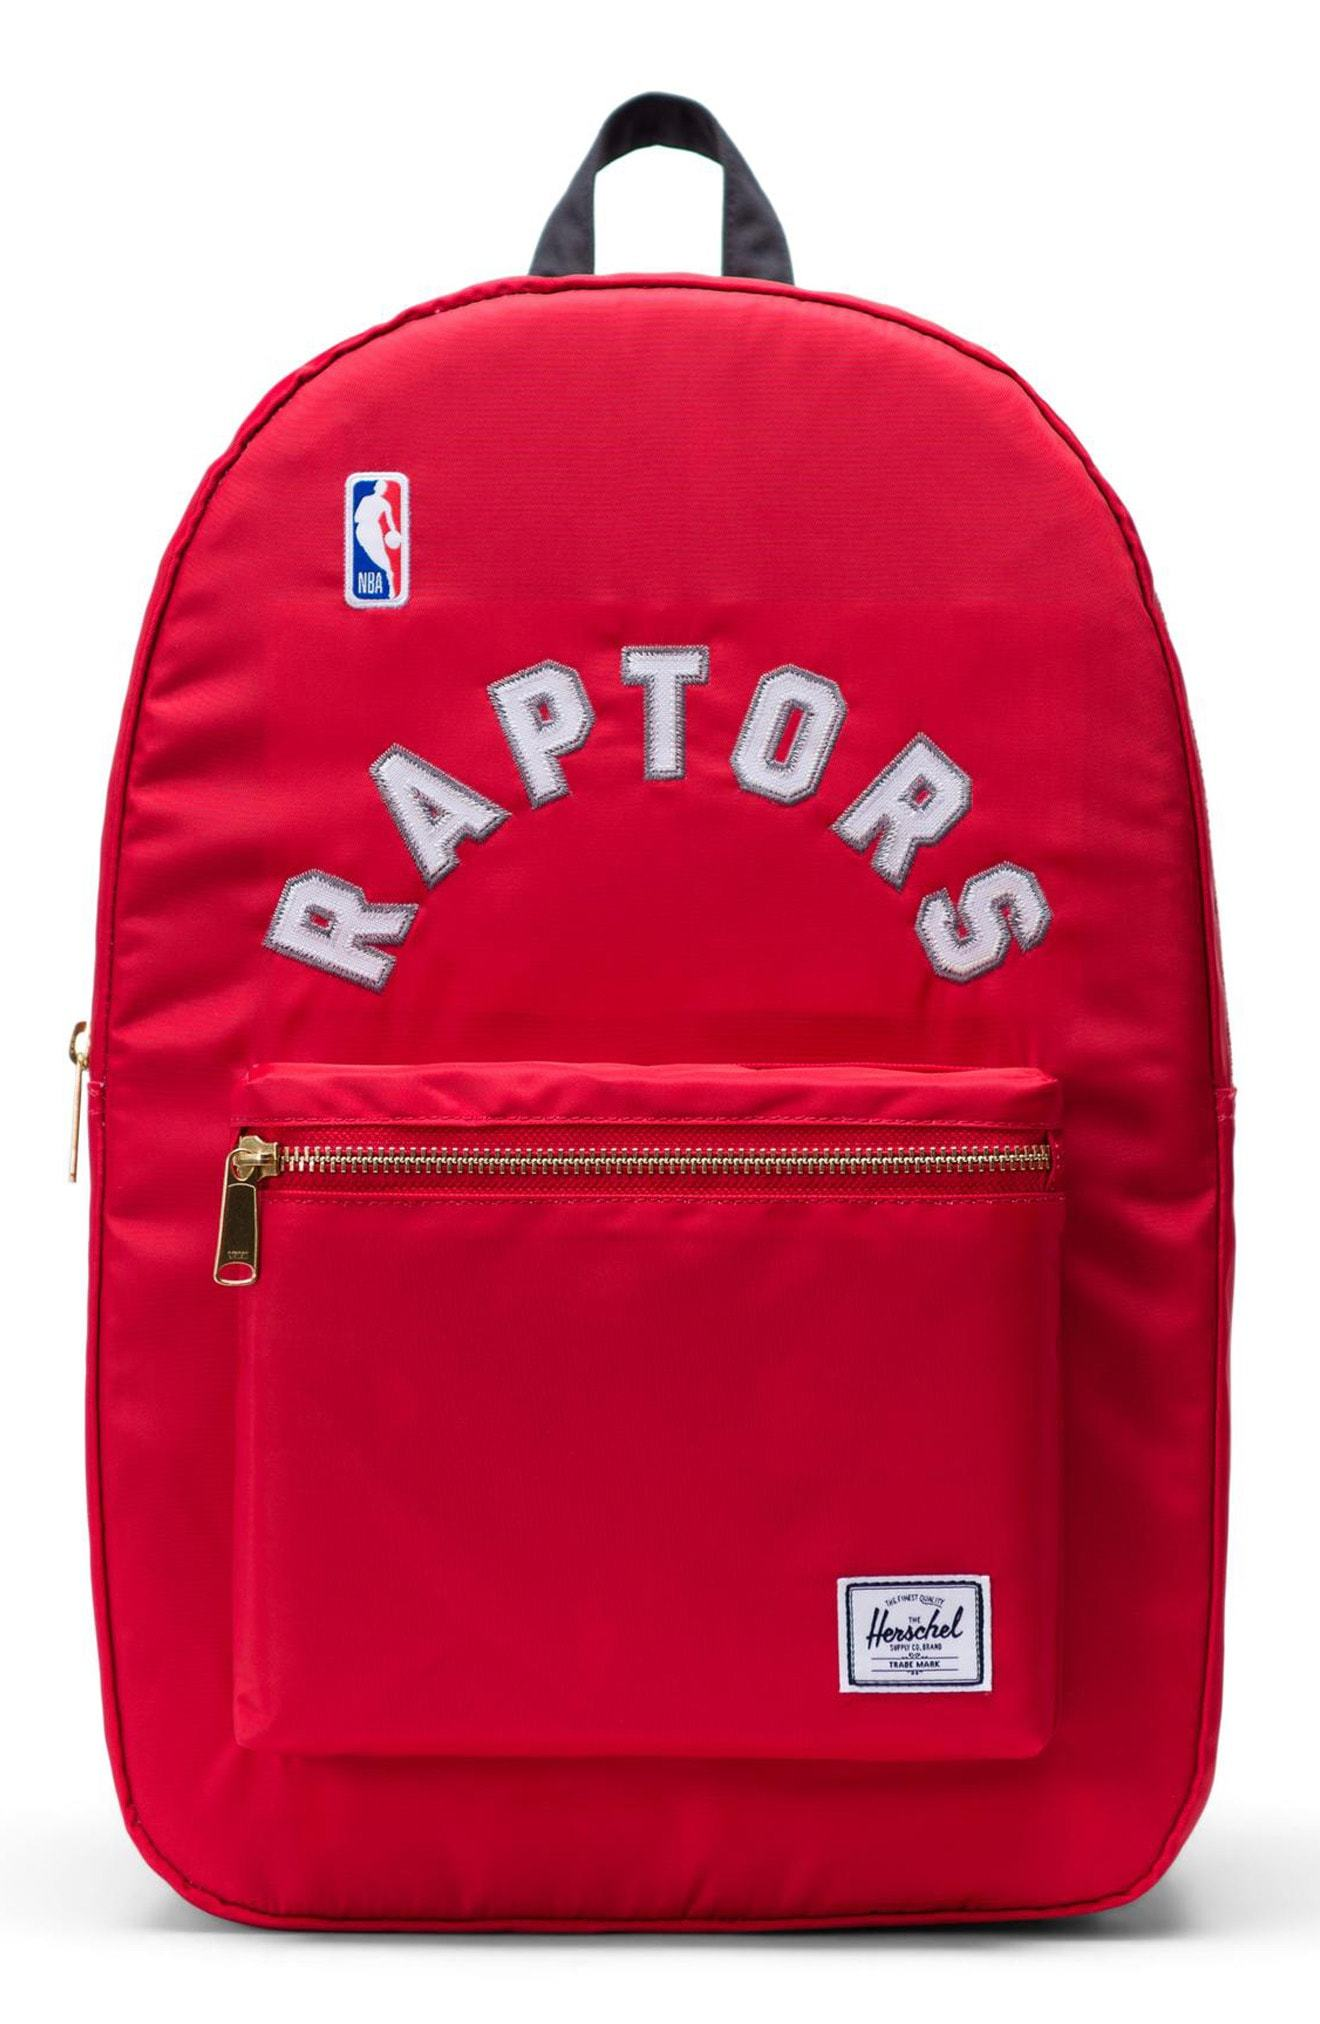 Herschel Supply Co. Settlet Nba Champion Backpack